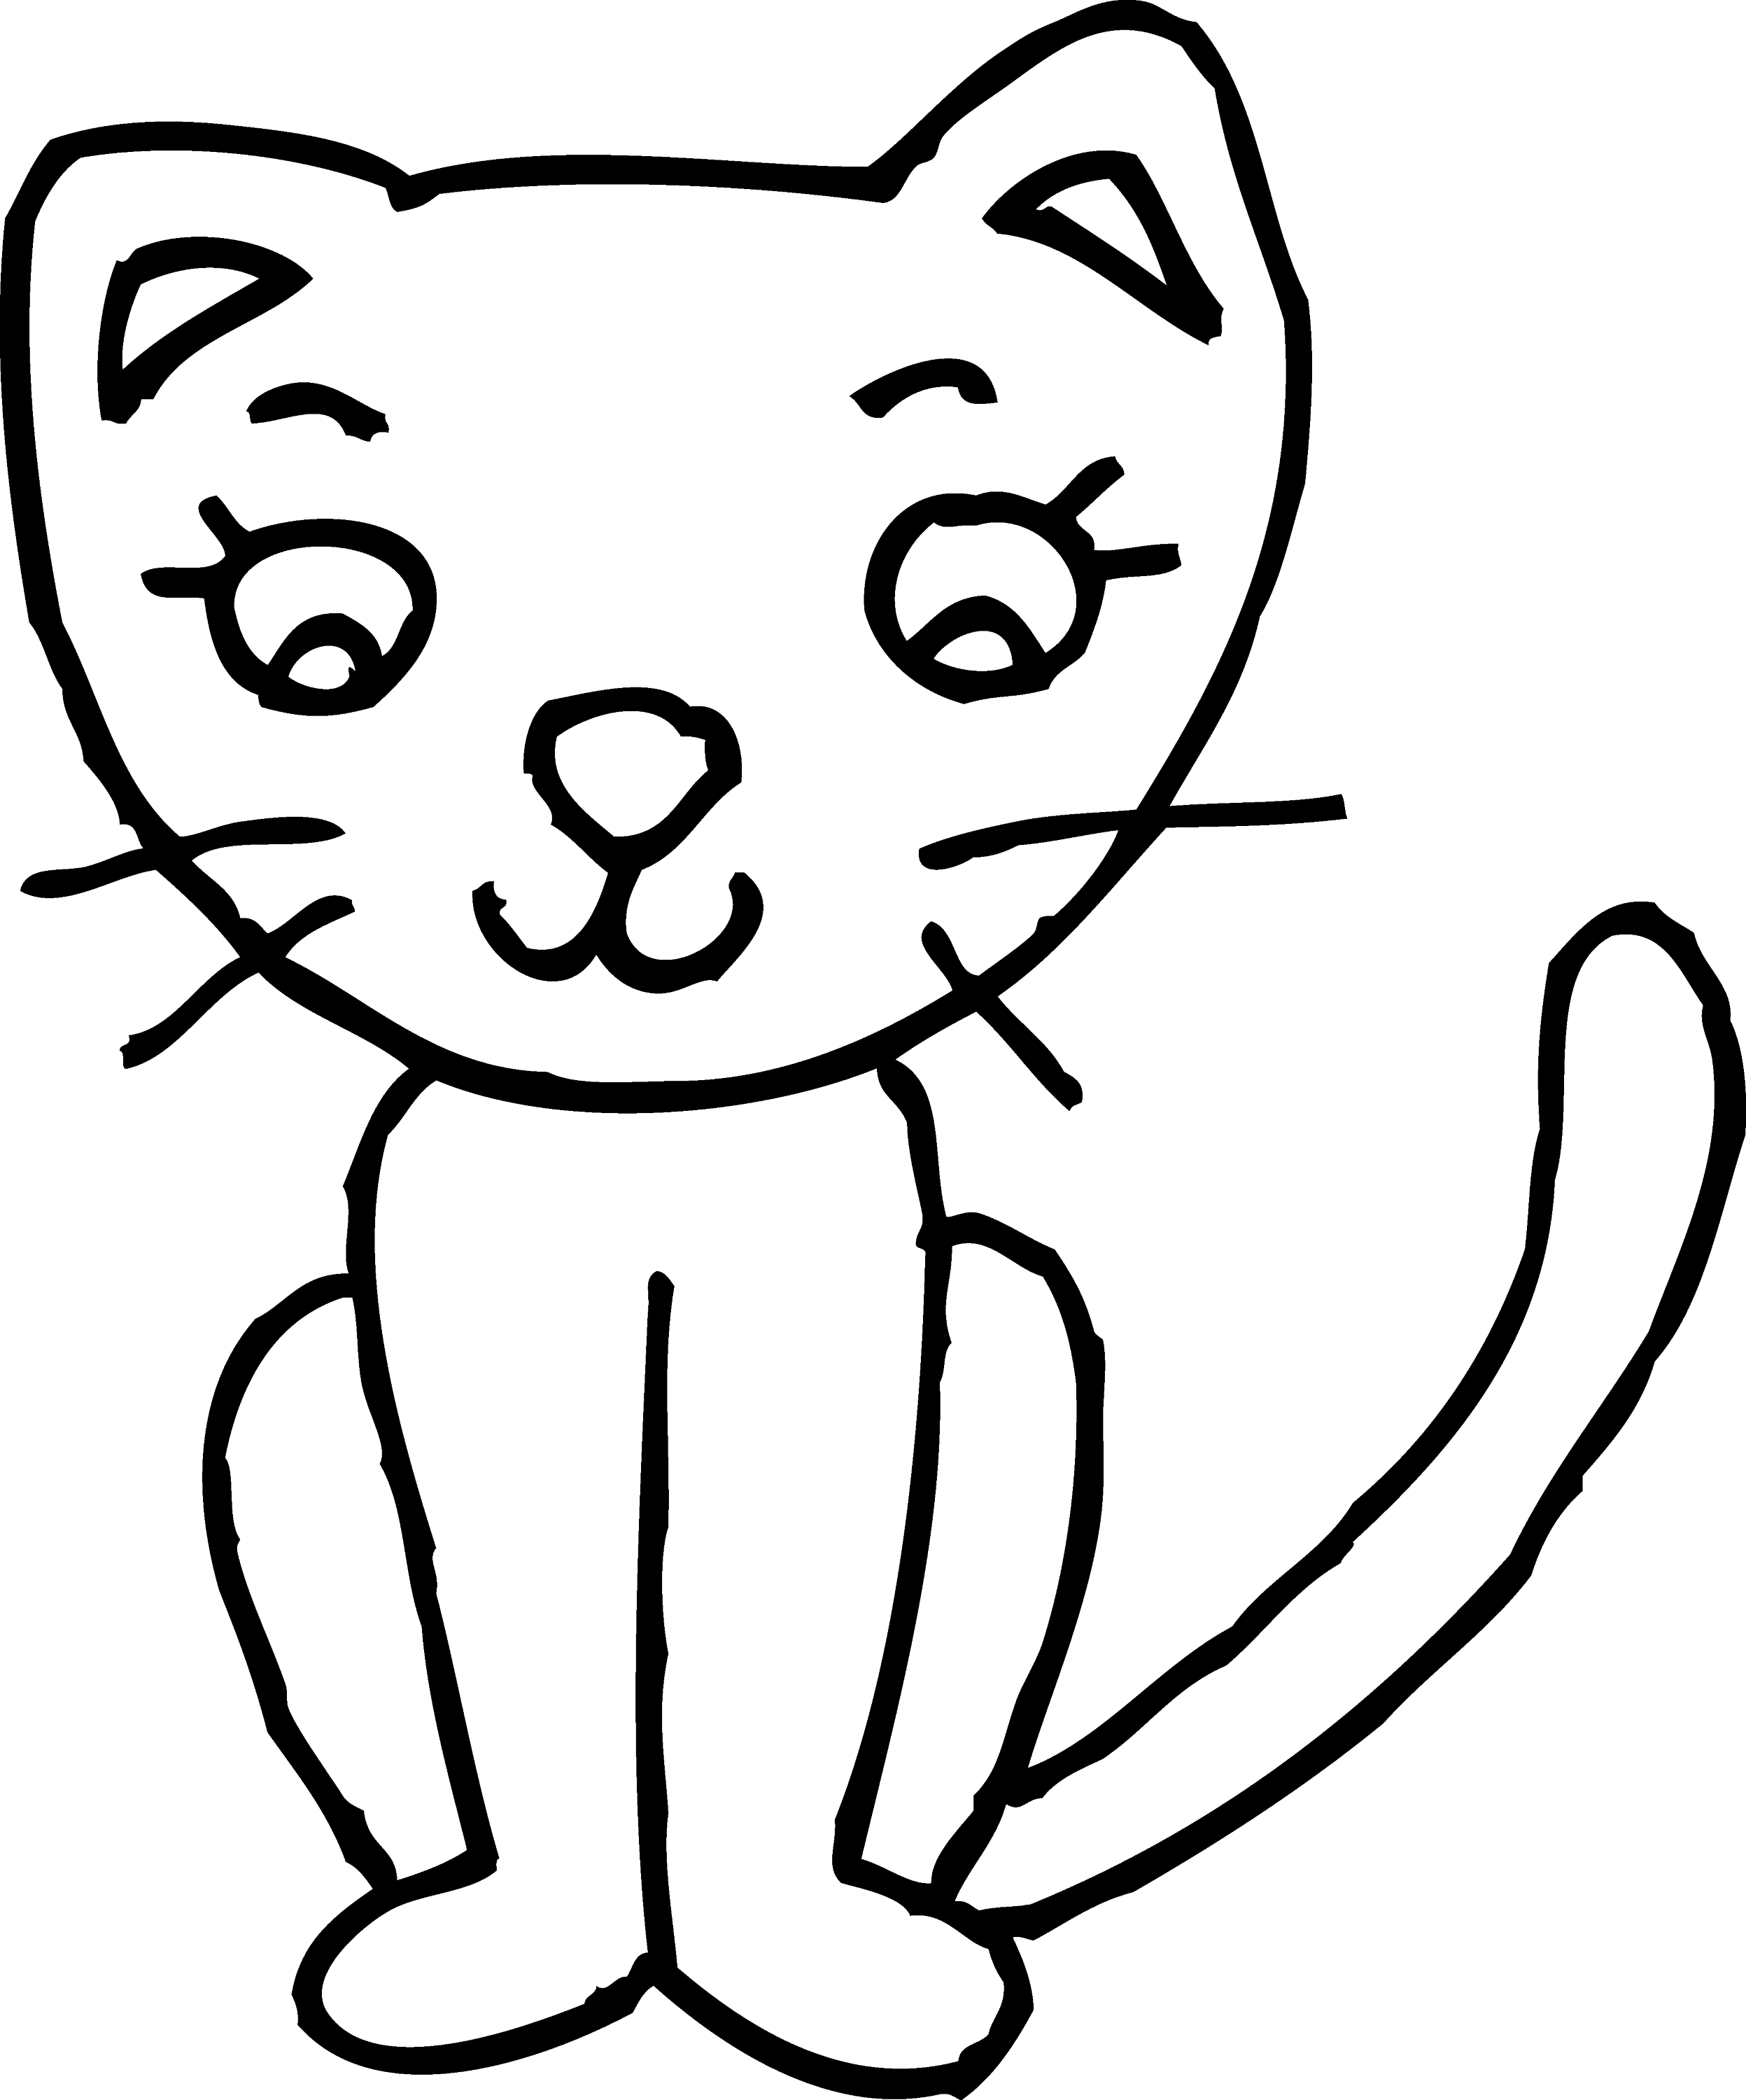 cute kitty colorable line art free clip art rh sweetclipart com cute black cat clipart cute cat clipart images